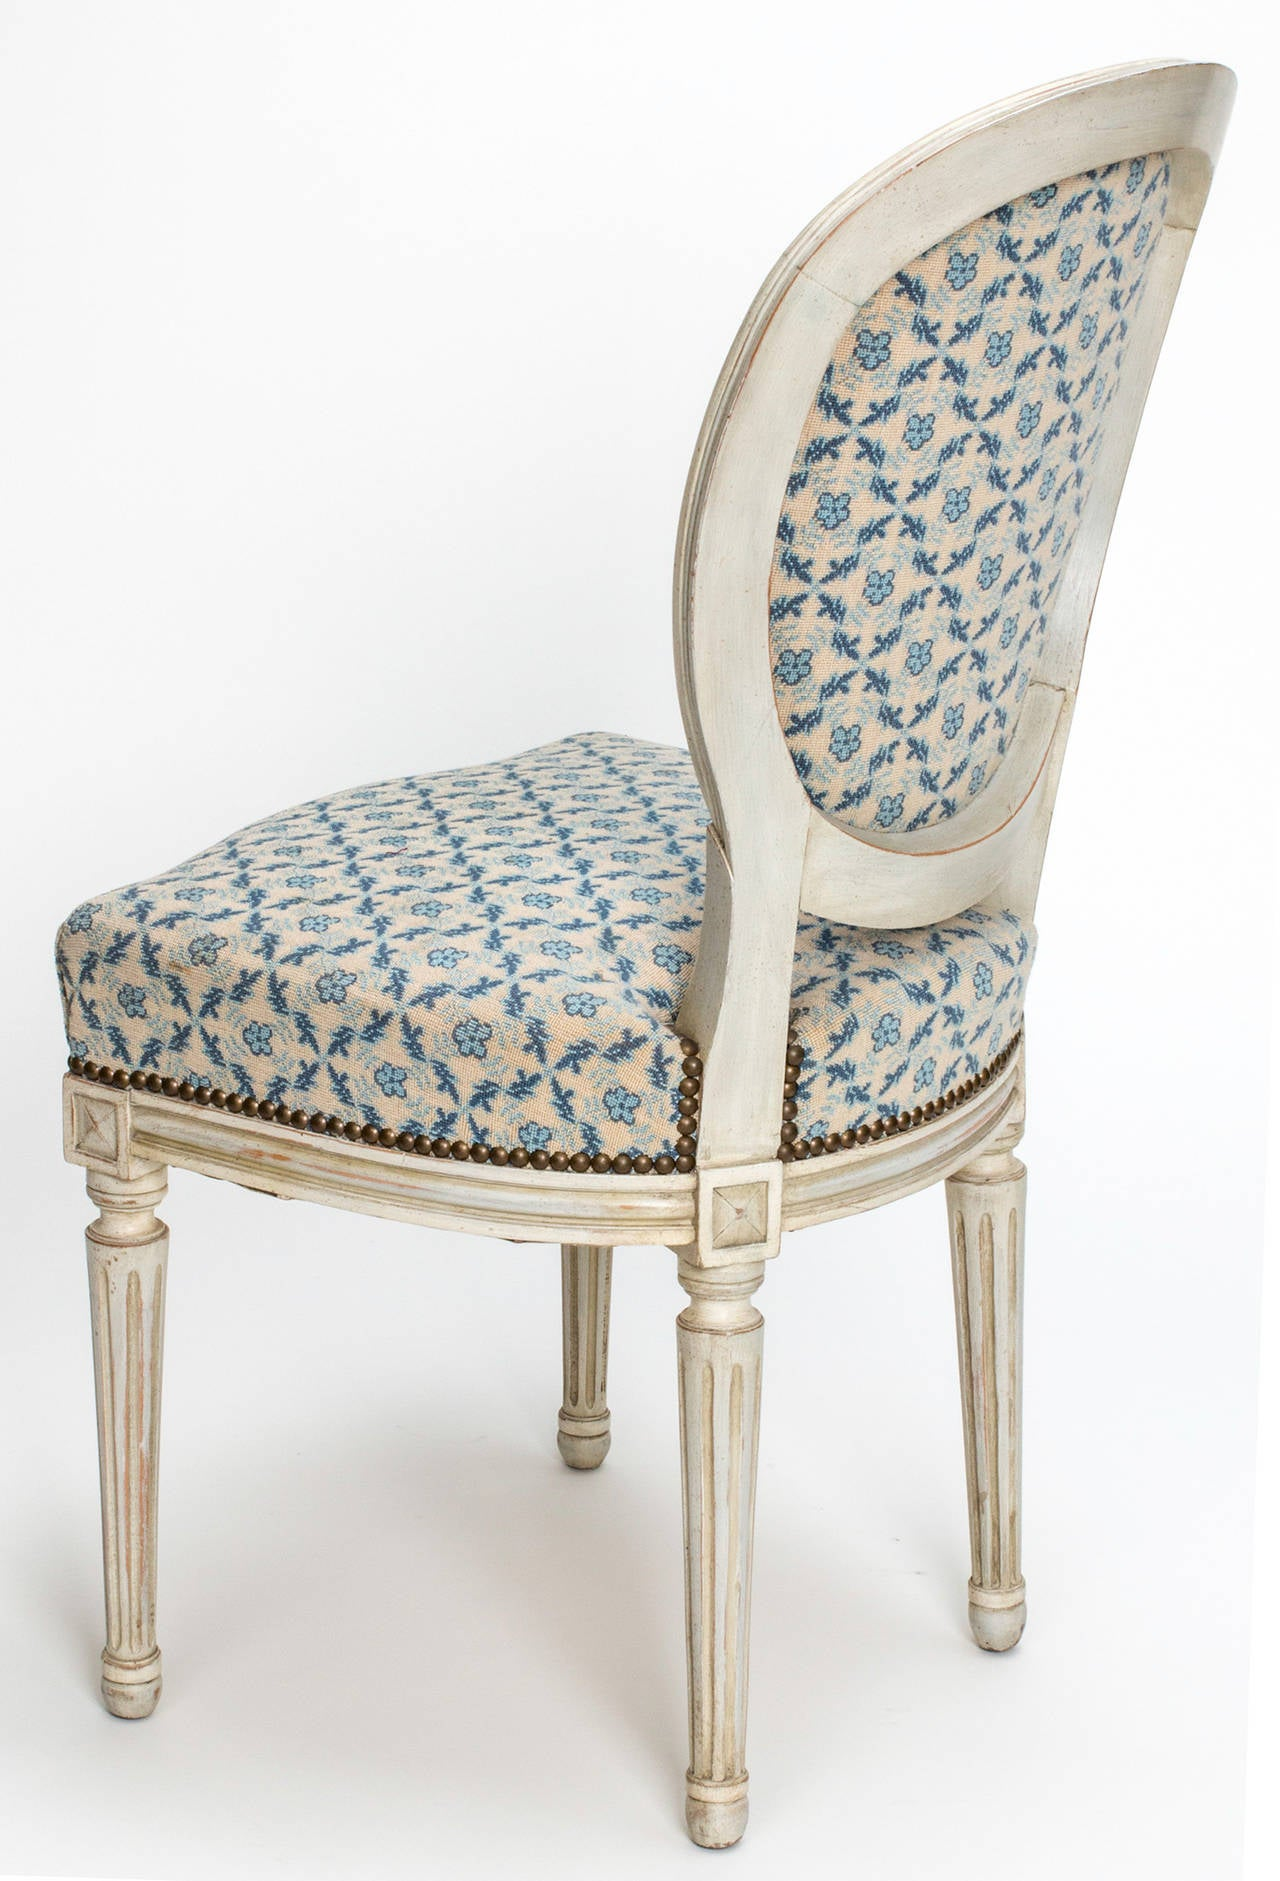 C 1890s Louis XVI Style Painted Dining Chairs set of four